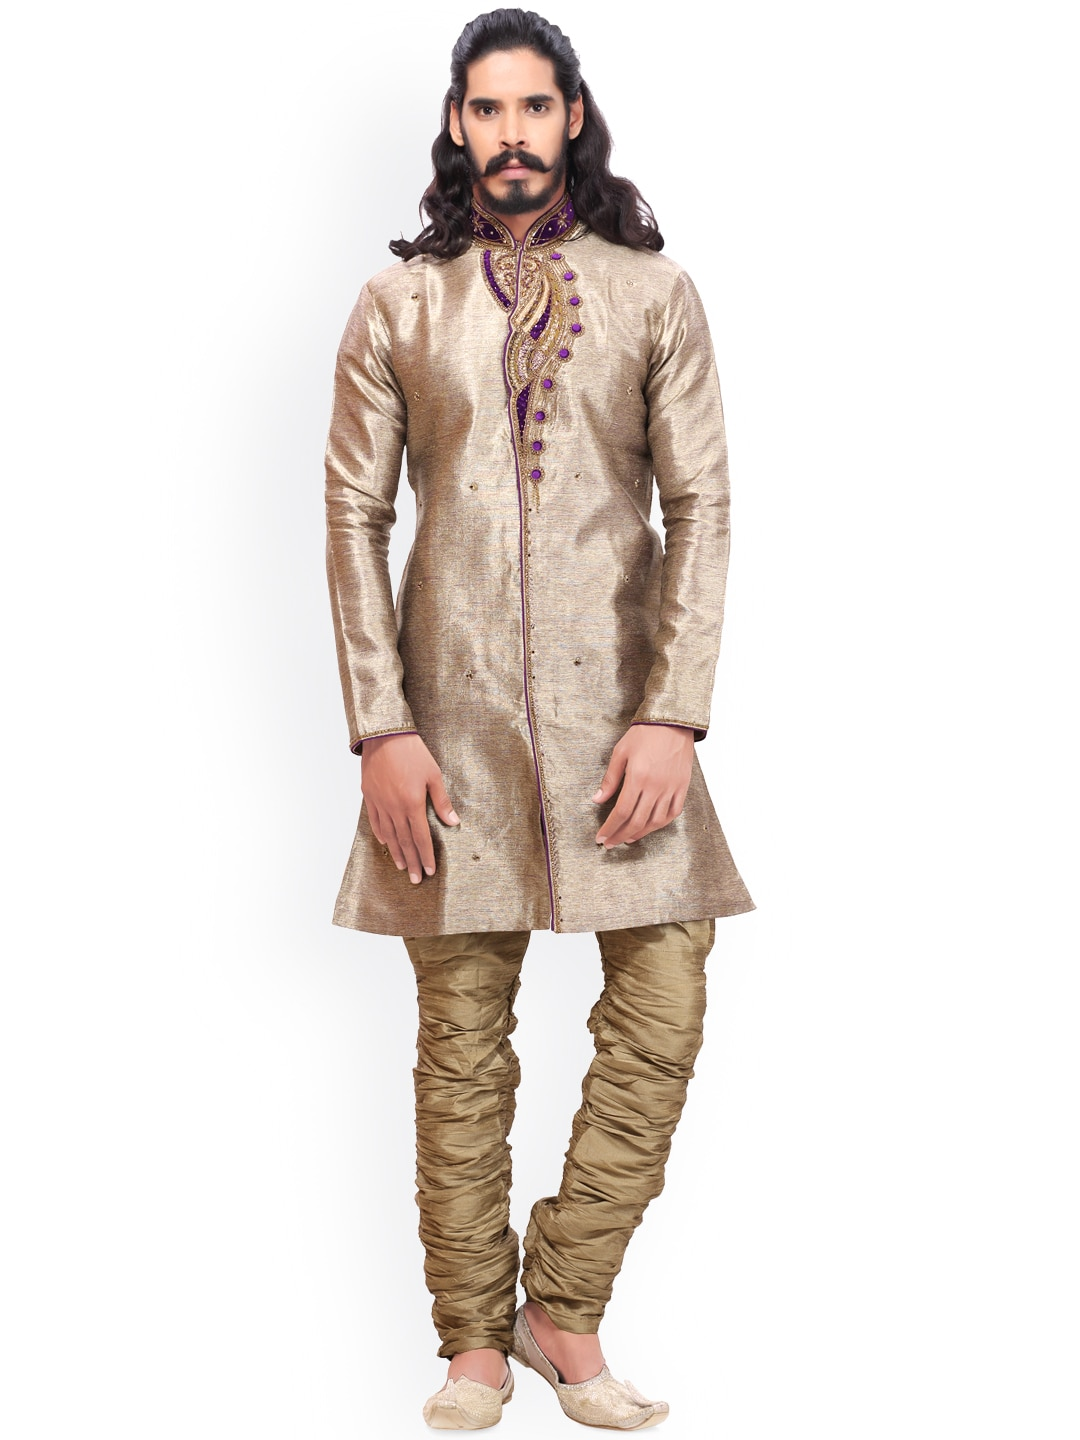 RG DESIGNERS Muted Gold-Toned & Brown Embroidered Sherwani